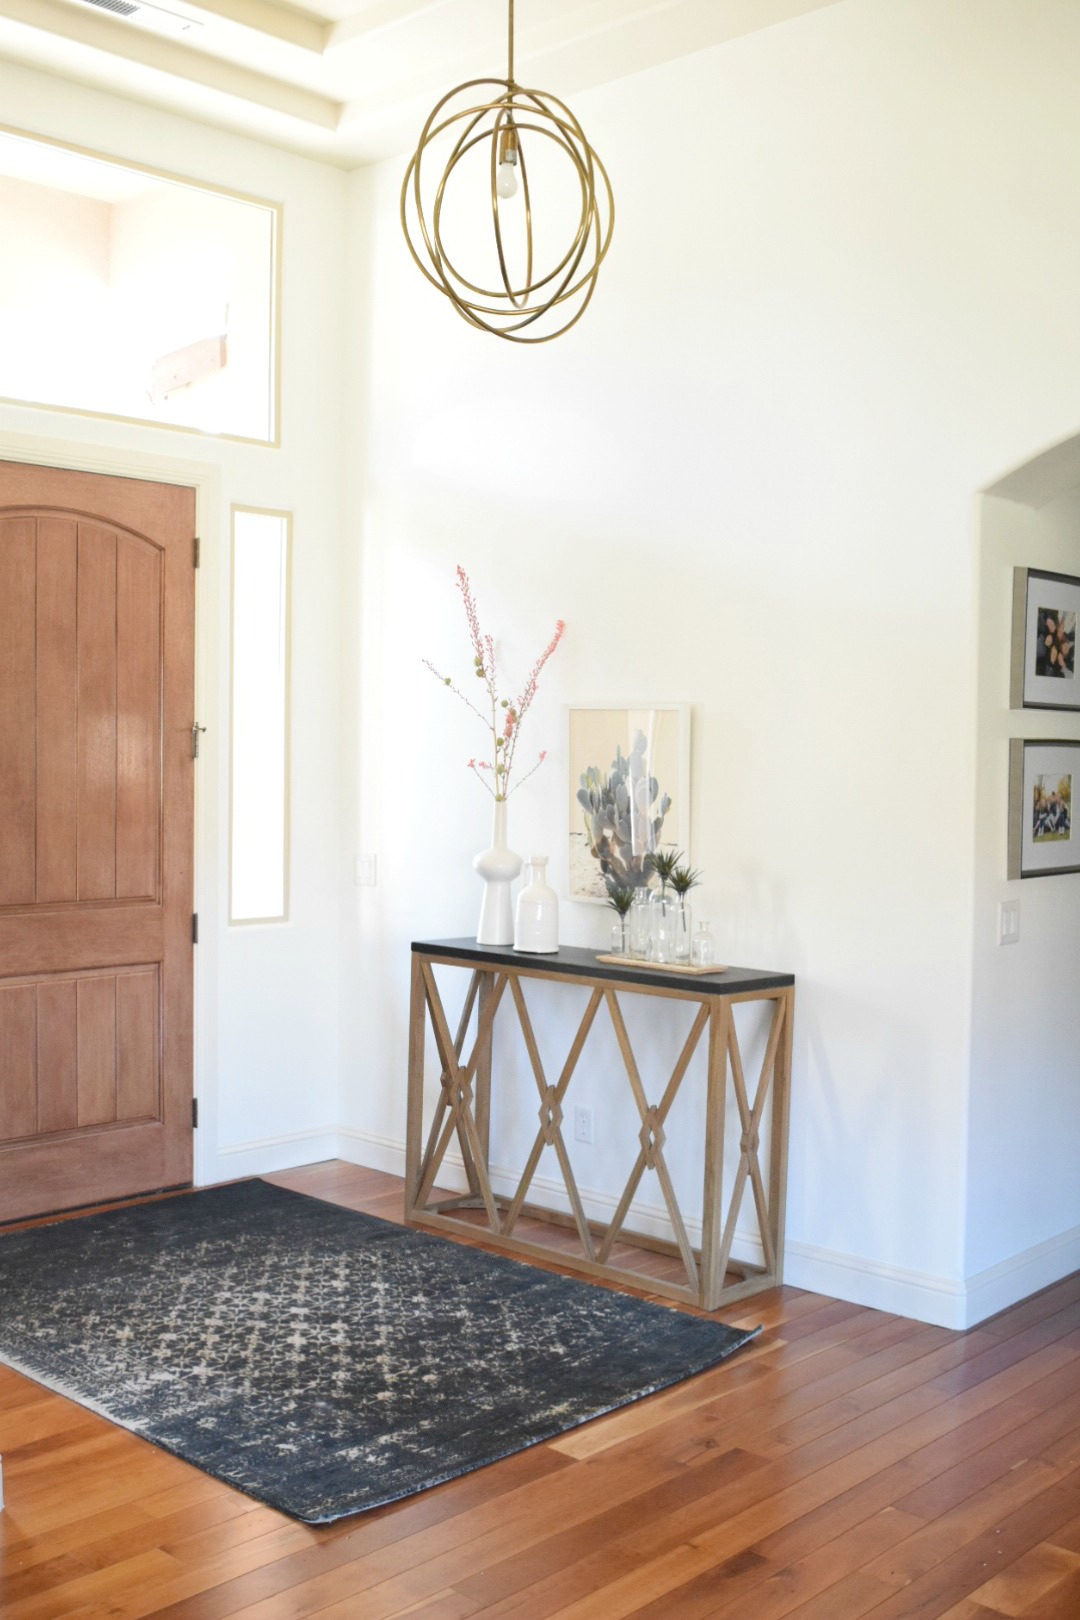 Modern Home Refresh with Simply White Paint - Nesting With Grace